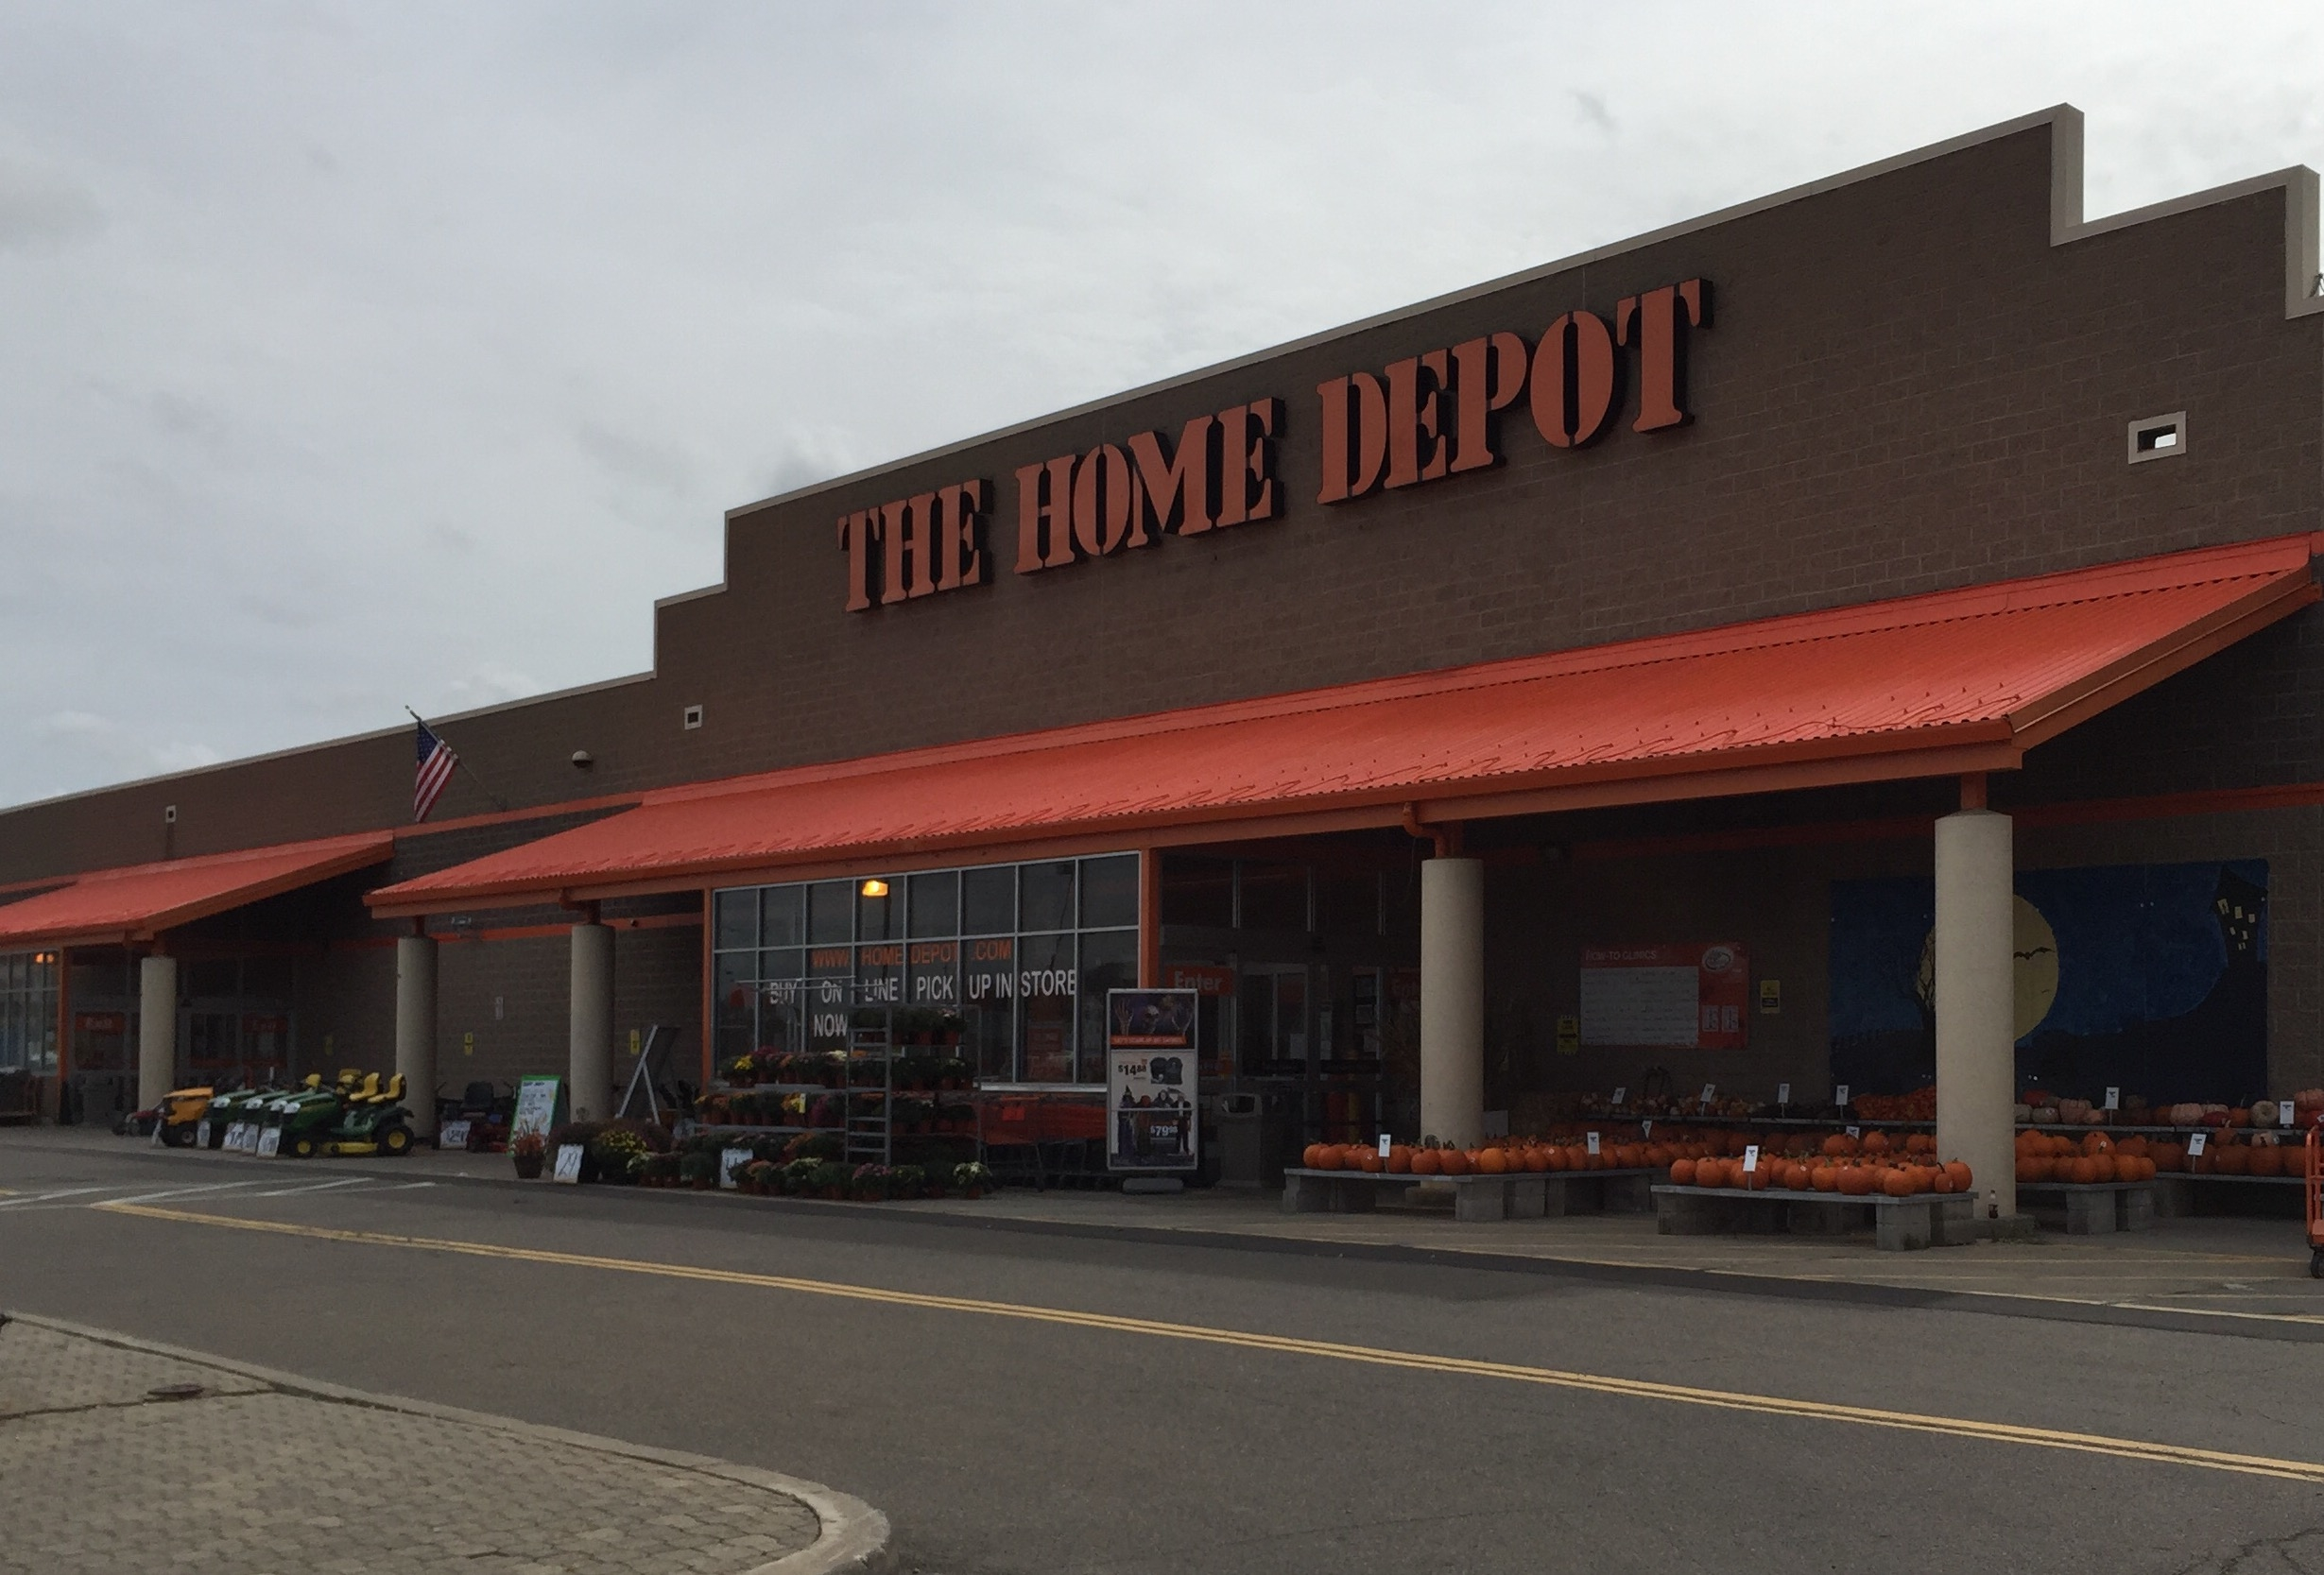 Home Depot keeps its customers happy by listening to what they've got to say about their products and services. By filling this easy survey, you can make Home Depot listen to your store experiences and help the company serve you better.